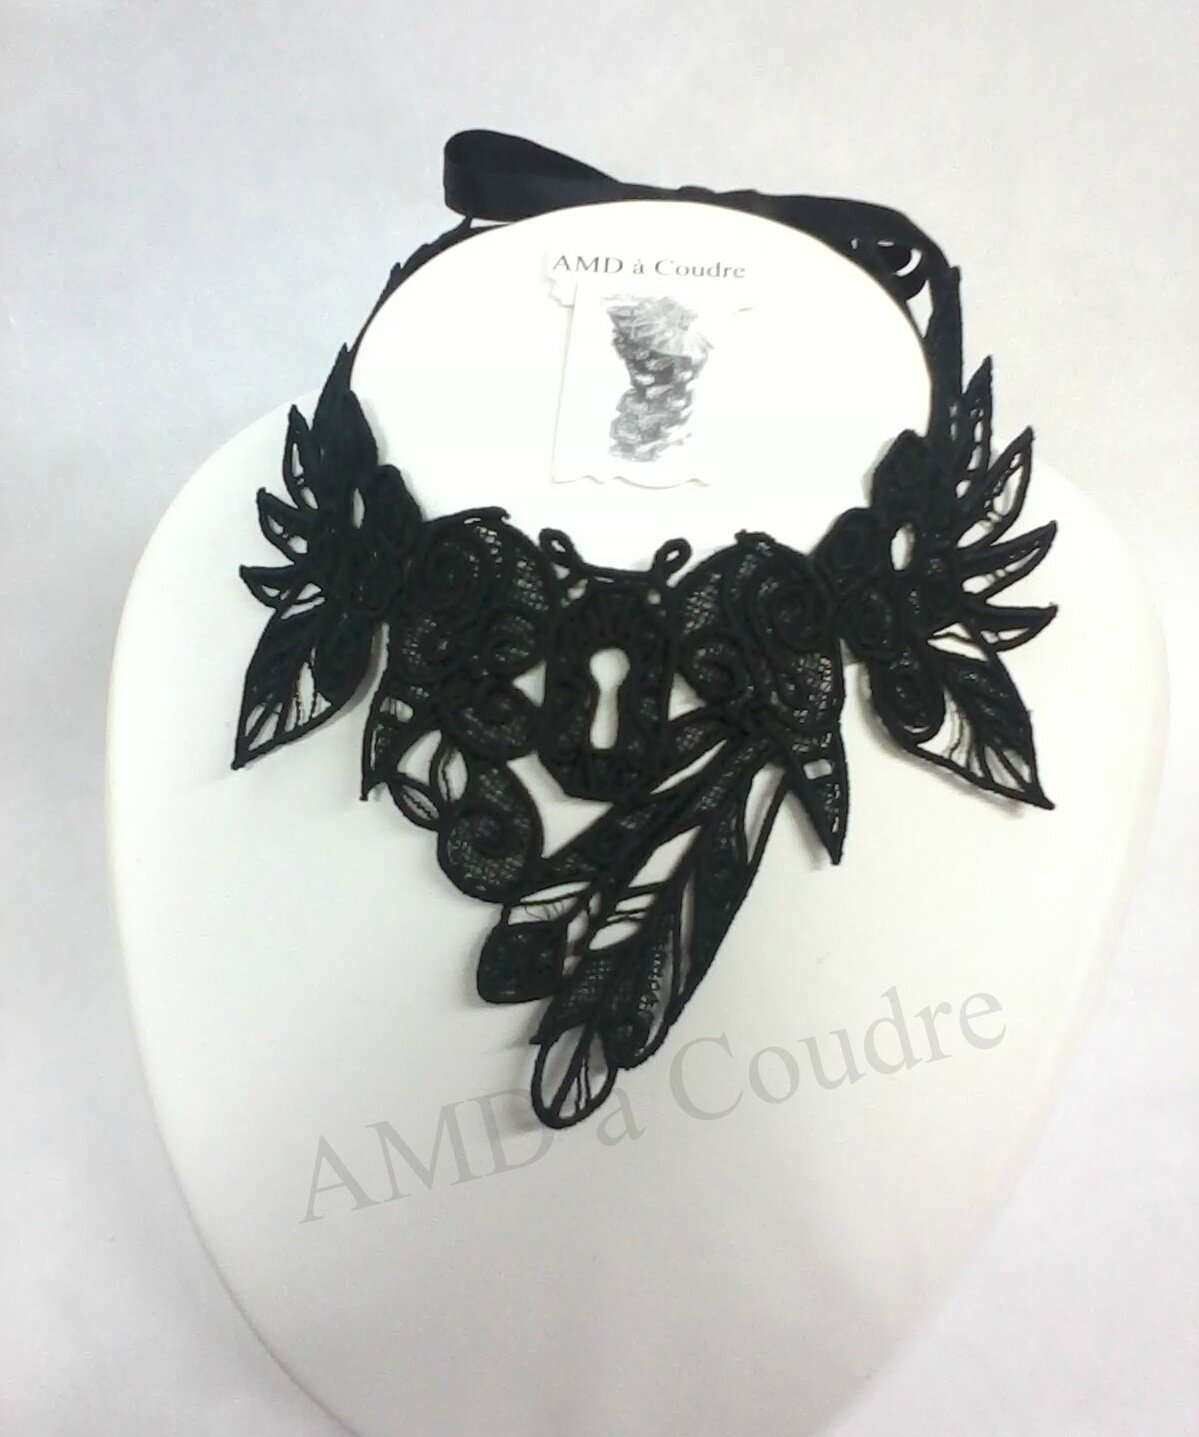 tour de cou, chocker dentelle noire broderie embroidery by amd a coudre (1)-001